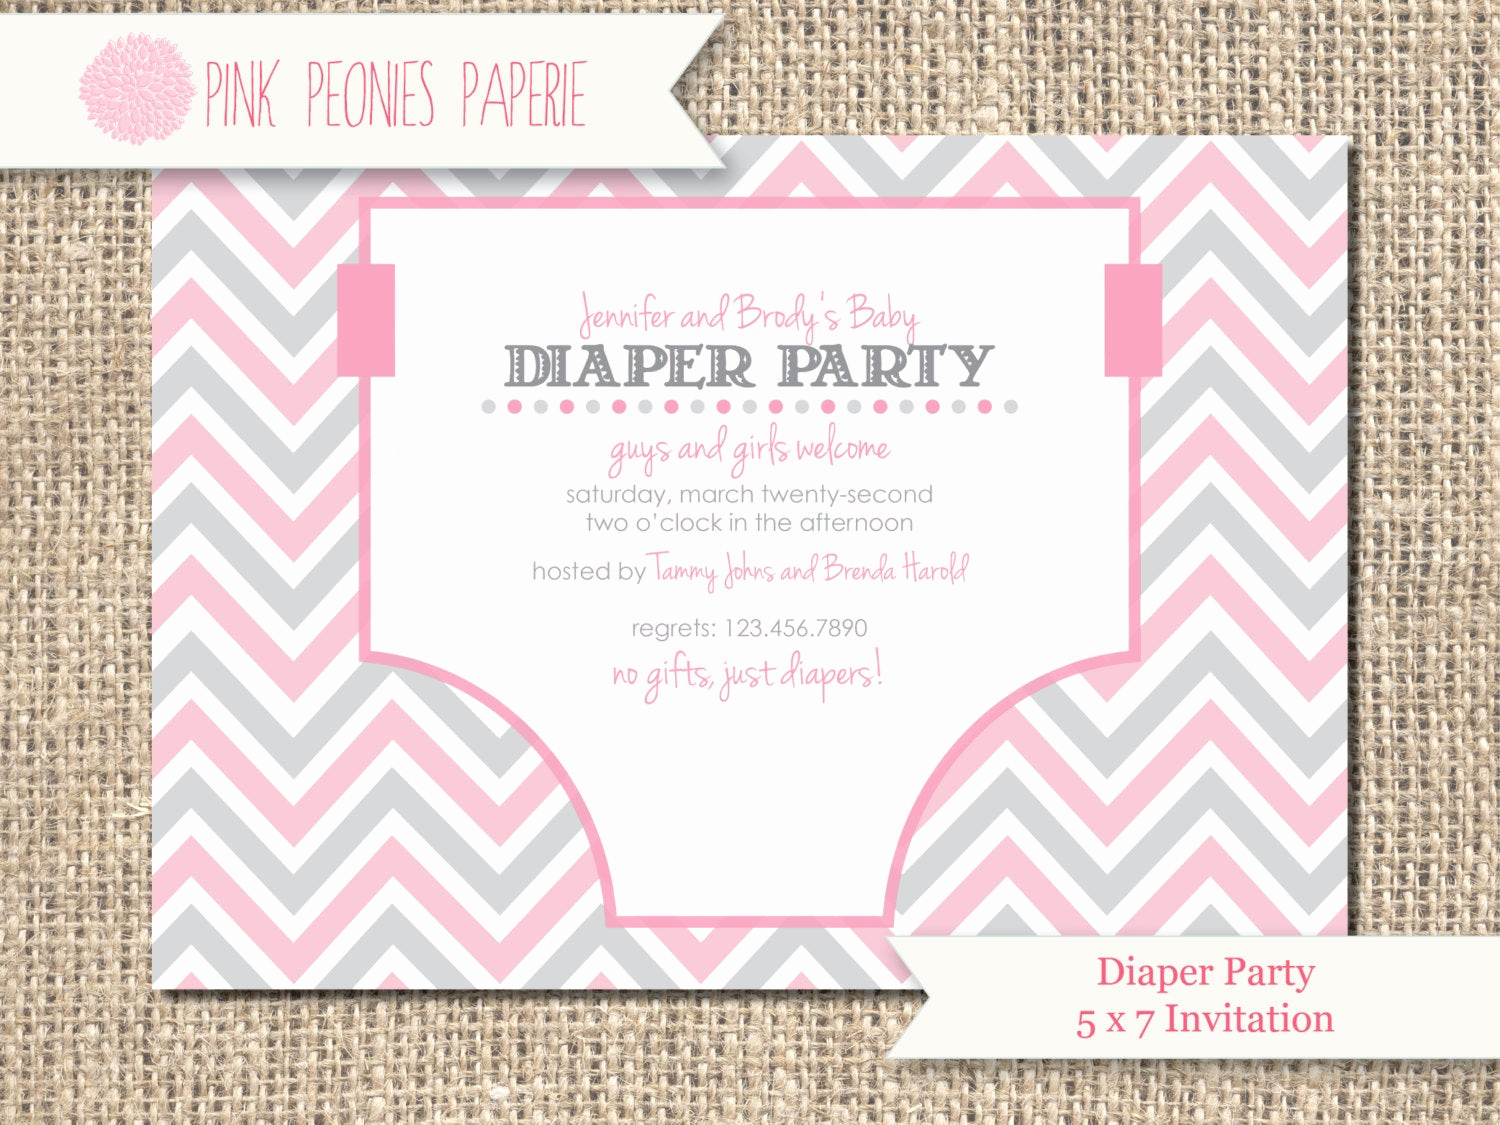 Diaper Party Invitation Templates Lovely Baby Shower Invitation Diaper Party Gender by